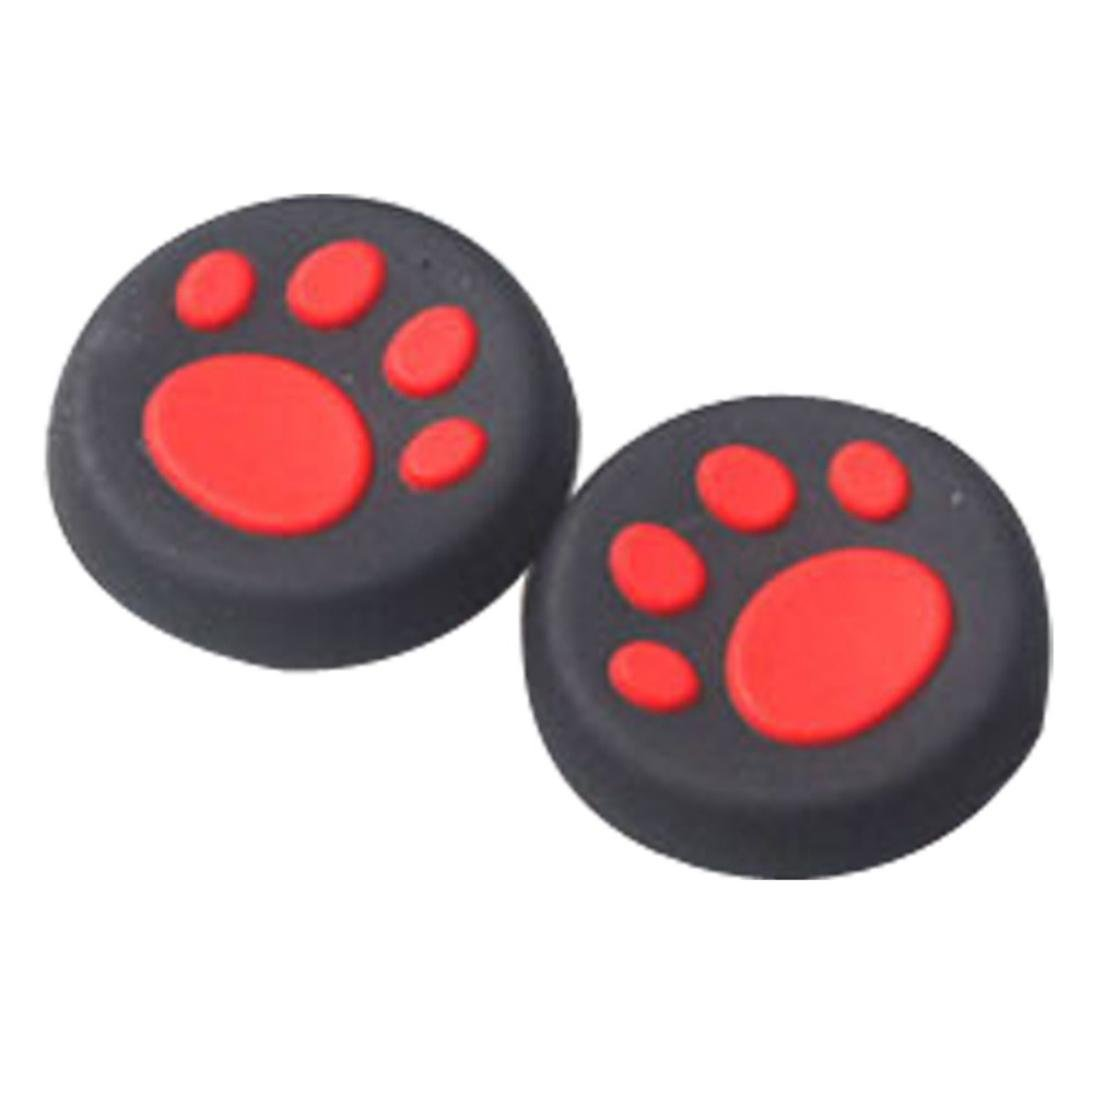 Amiley 1 Pairs Cute Cat Paw Claw Silicone Thumb Grips Caps ThumbStick for Nintendo Switch Controller (red) by Amiley (Image #1)